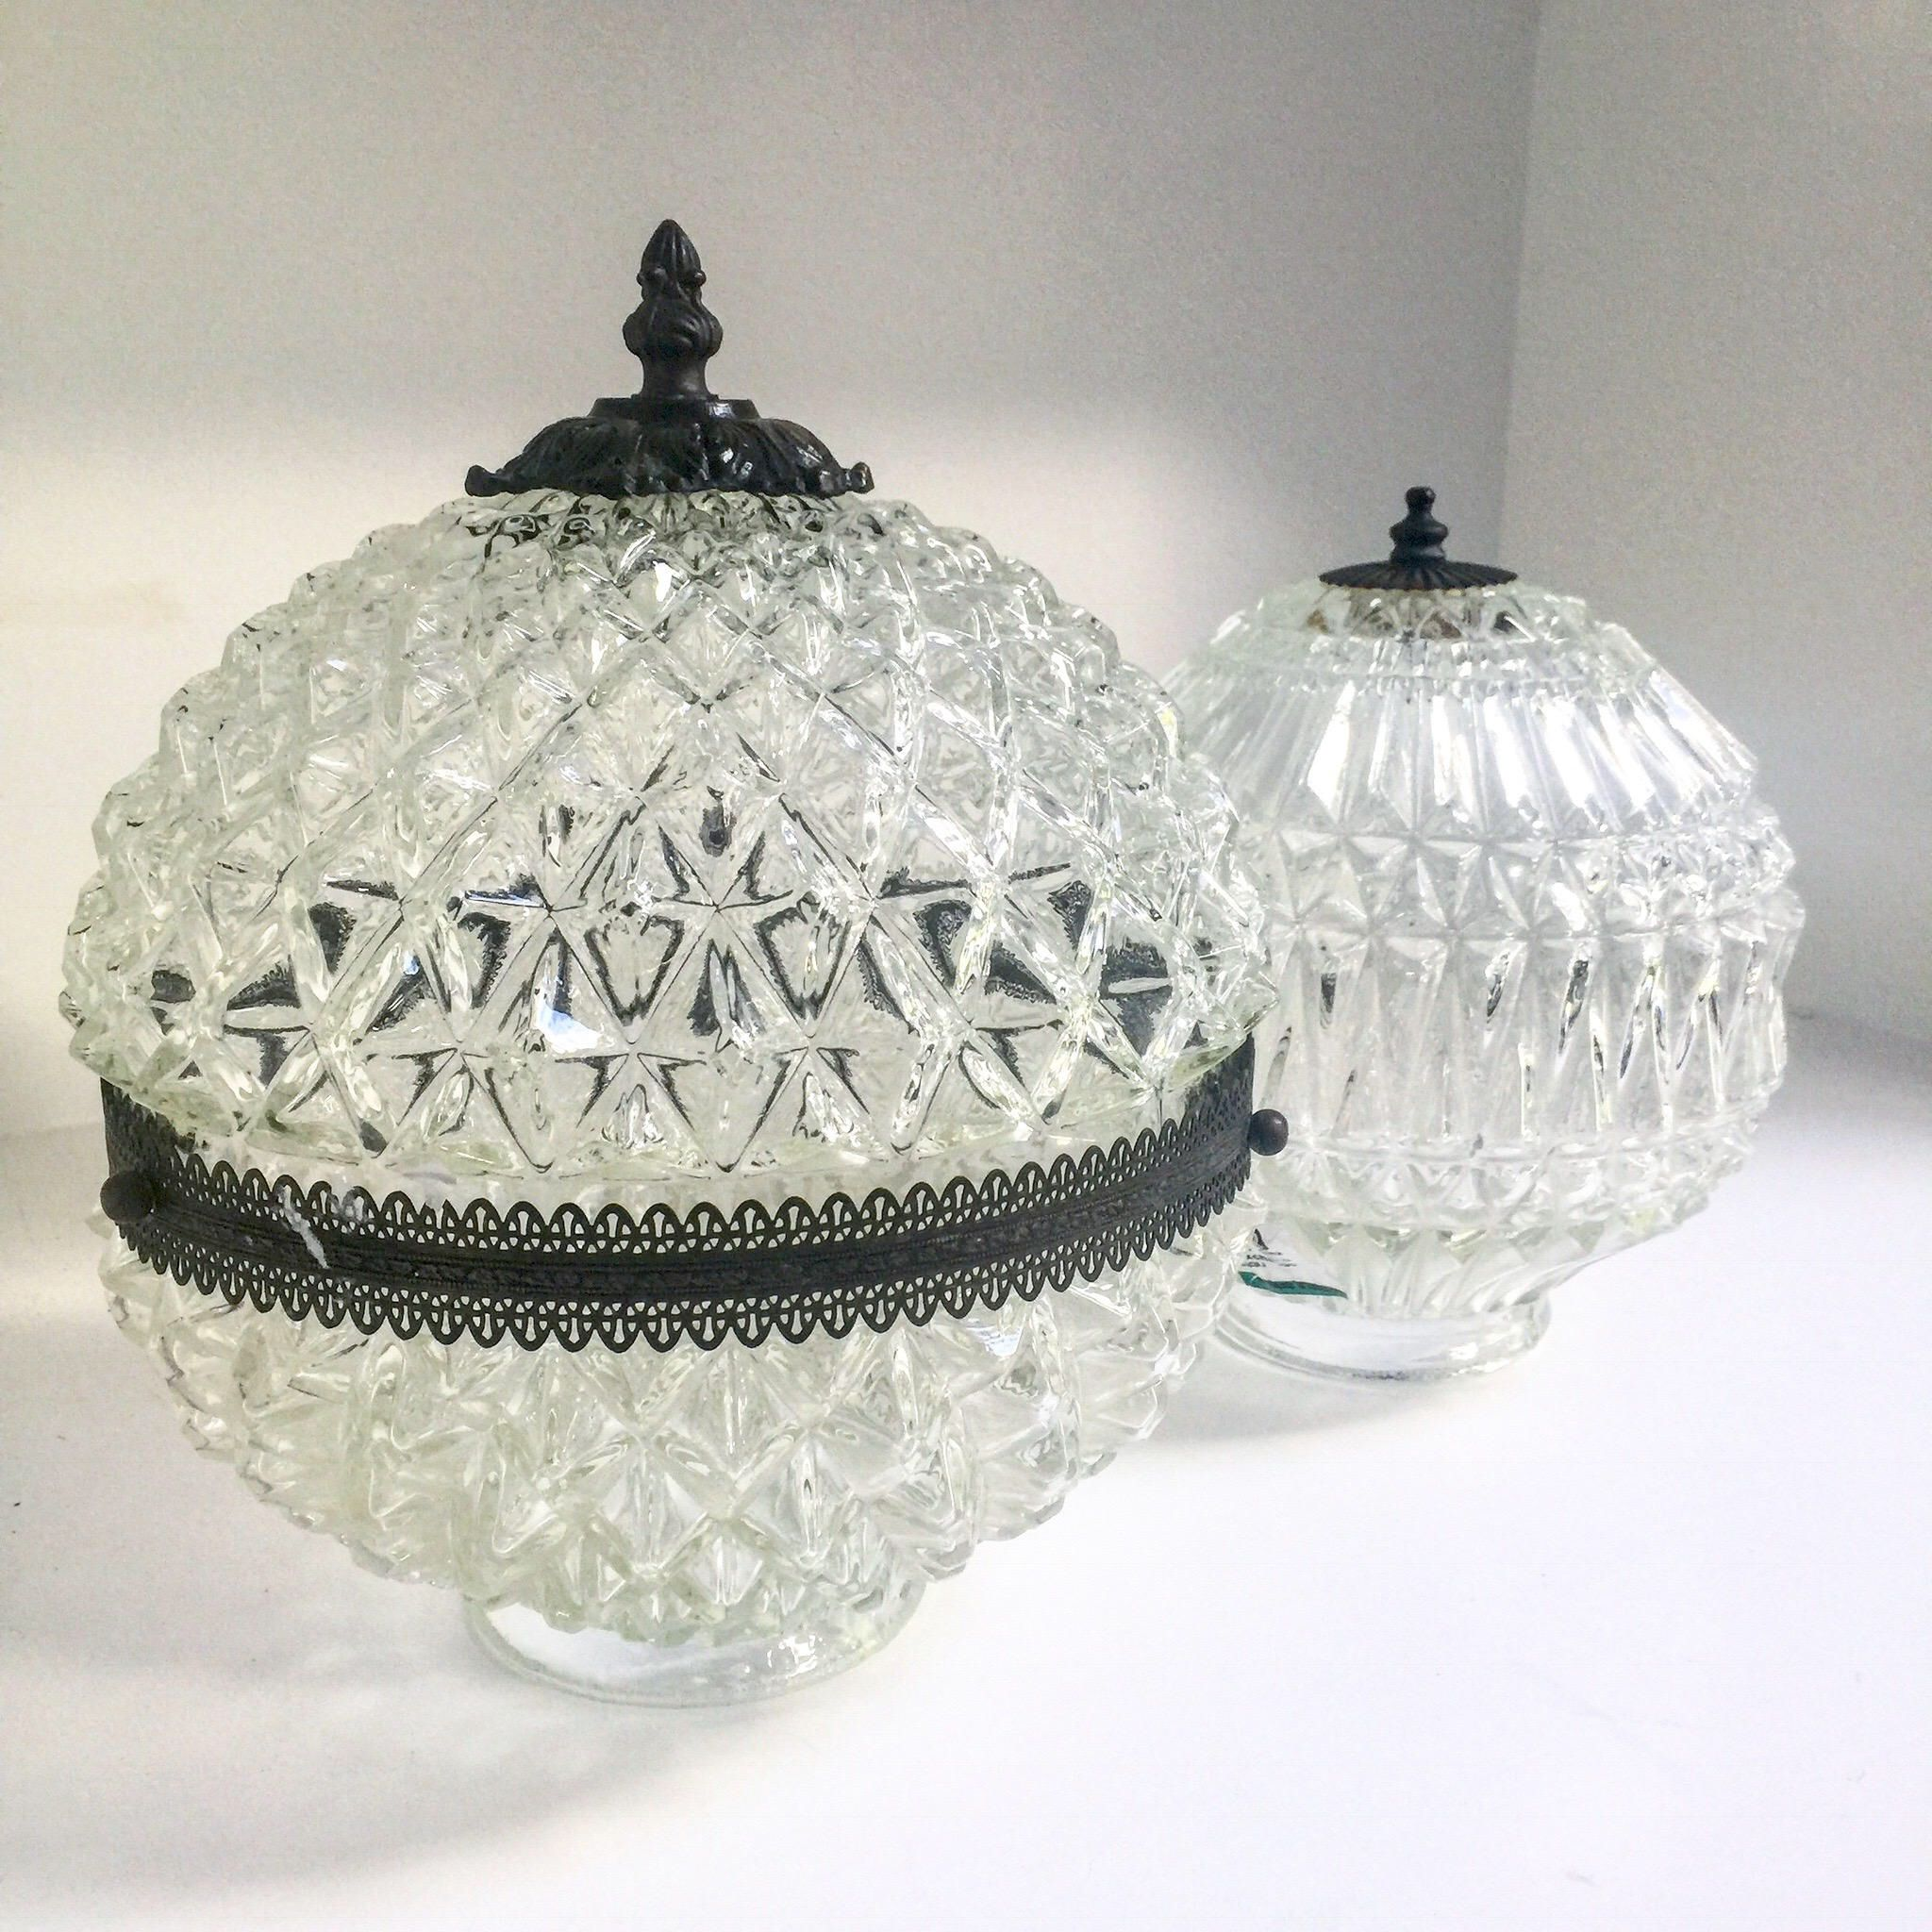 Vintage cut glass lamp shades set of two by atomichawks on etsy vintage cut glass lamp shades set of two by atomichawks on etsy https aloadofball Images